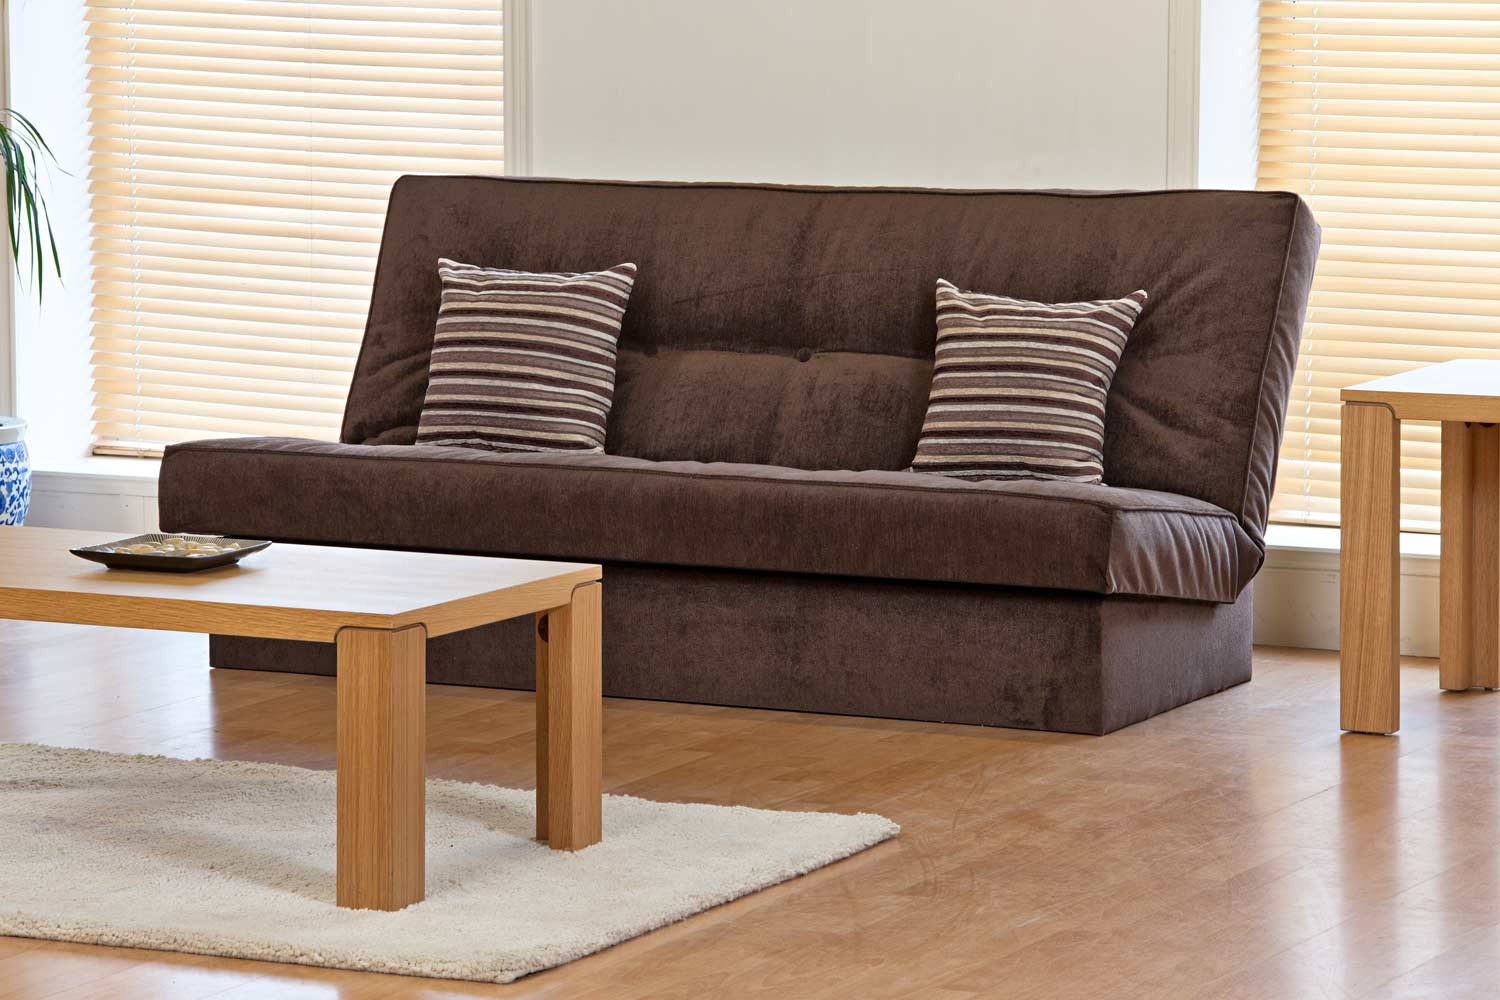 dark brown cheap futons with stripped cushions on wooden floor plus wooden  table and white carpet